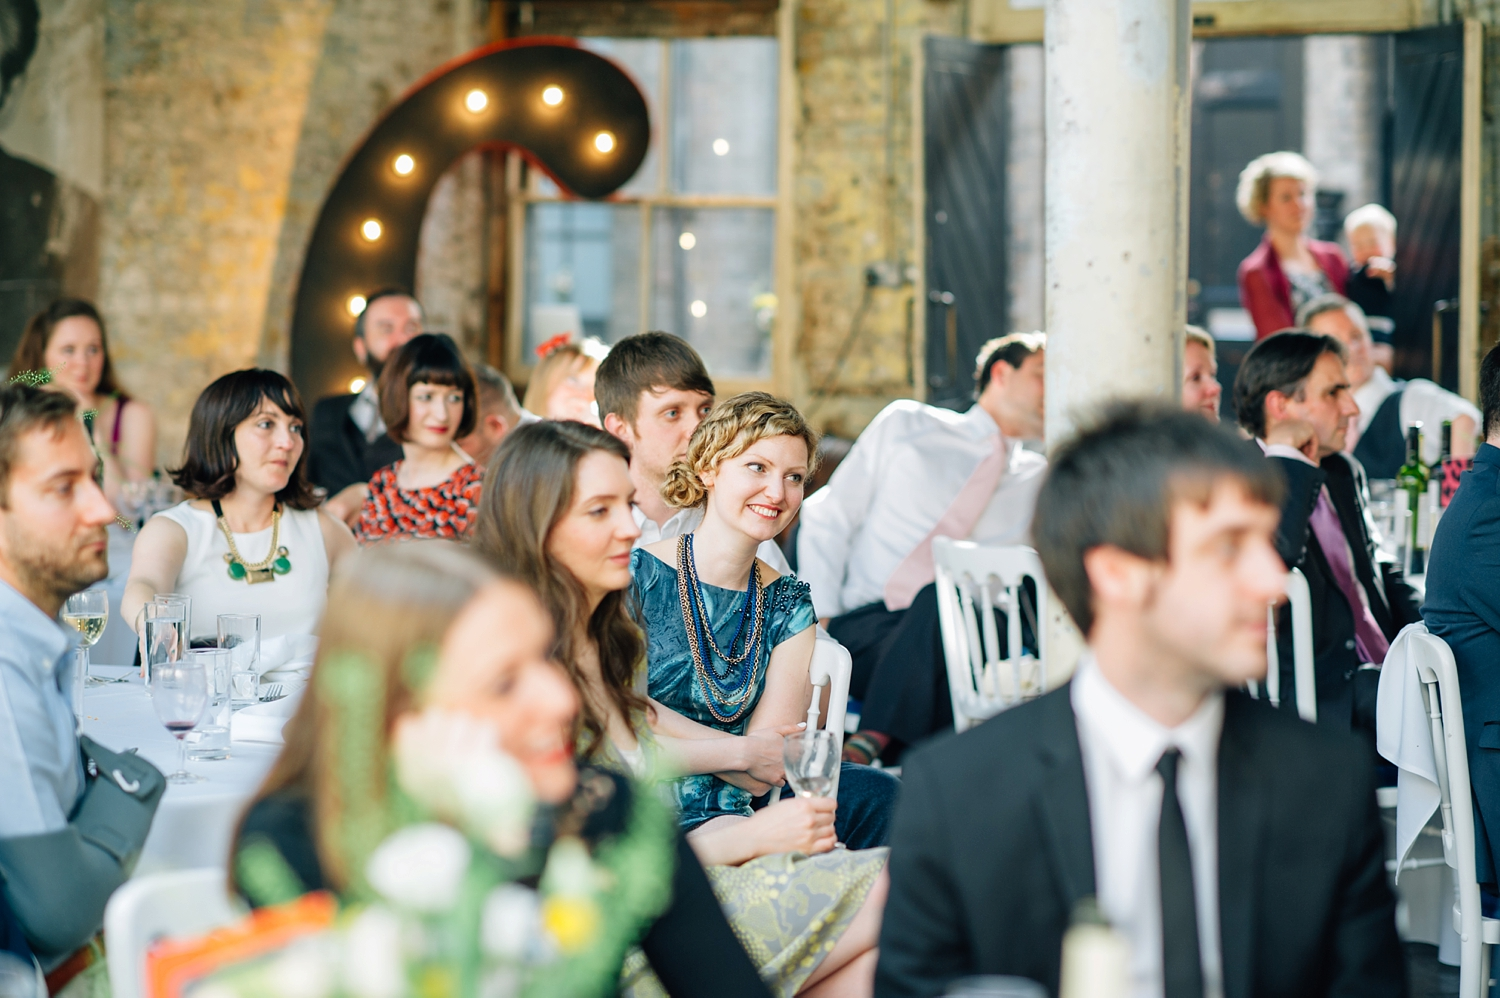 0162-lisa-devine-alternative-wedding-photography-london-hackney-dalston-london-photography-townhall-hotel.JPG